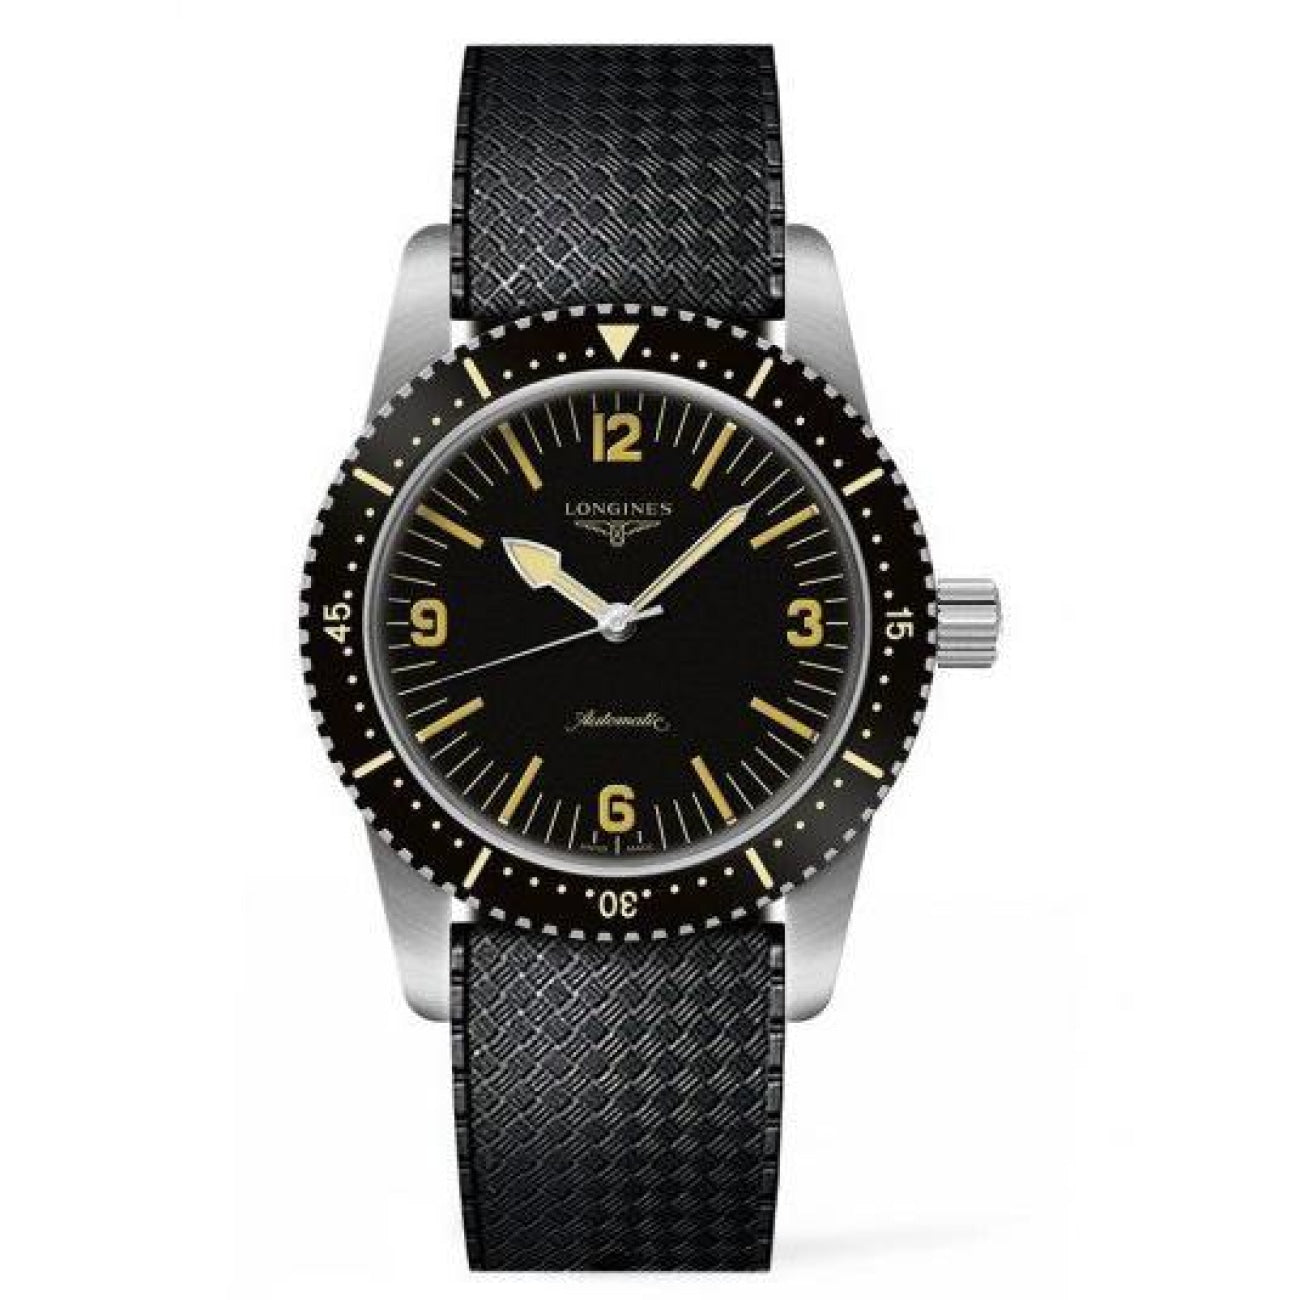 Longines Watches - SKIN DIVER WATCH 42MM STAINLESS STEEL/PVD AUTOMATIC L28224569 | Manfredi Jewels